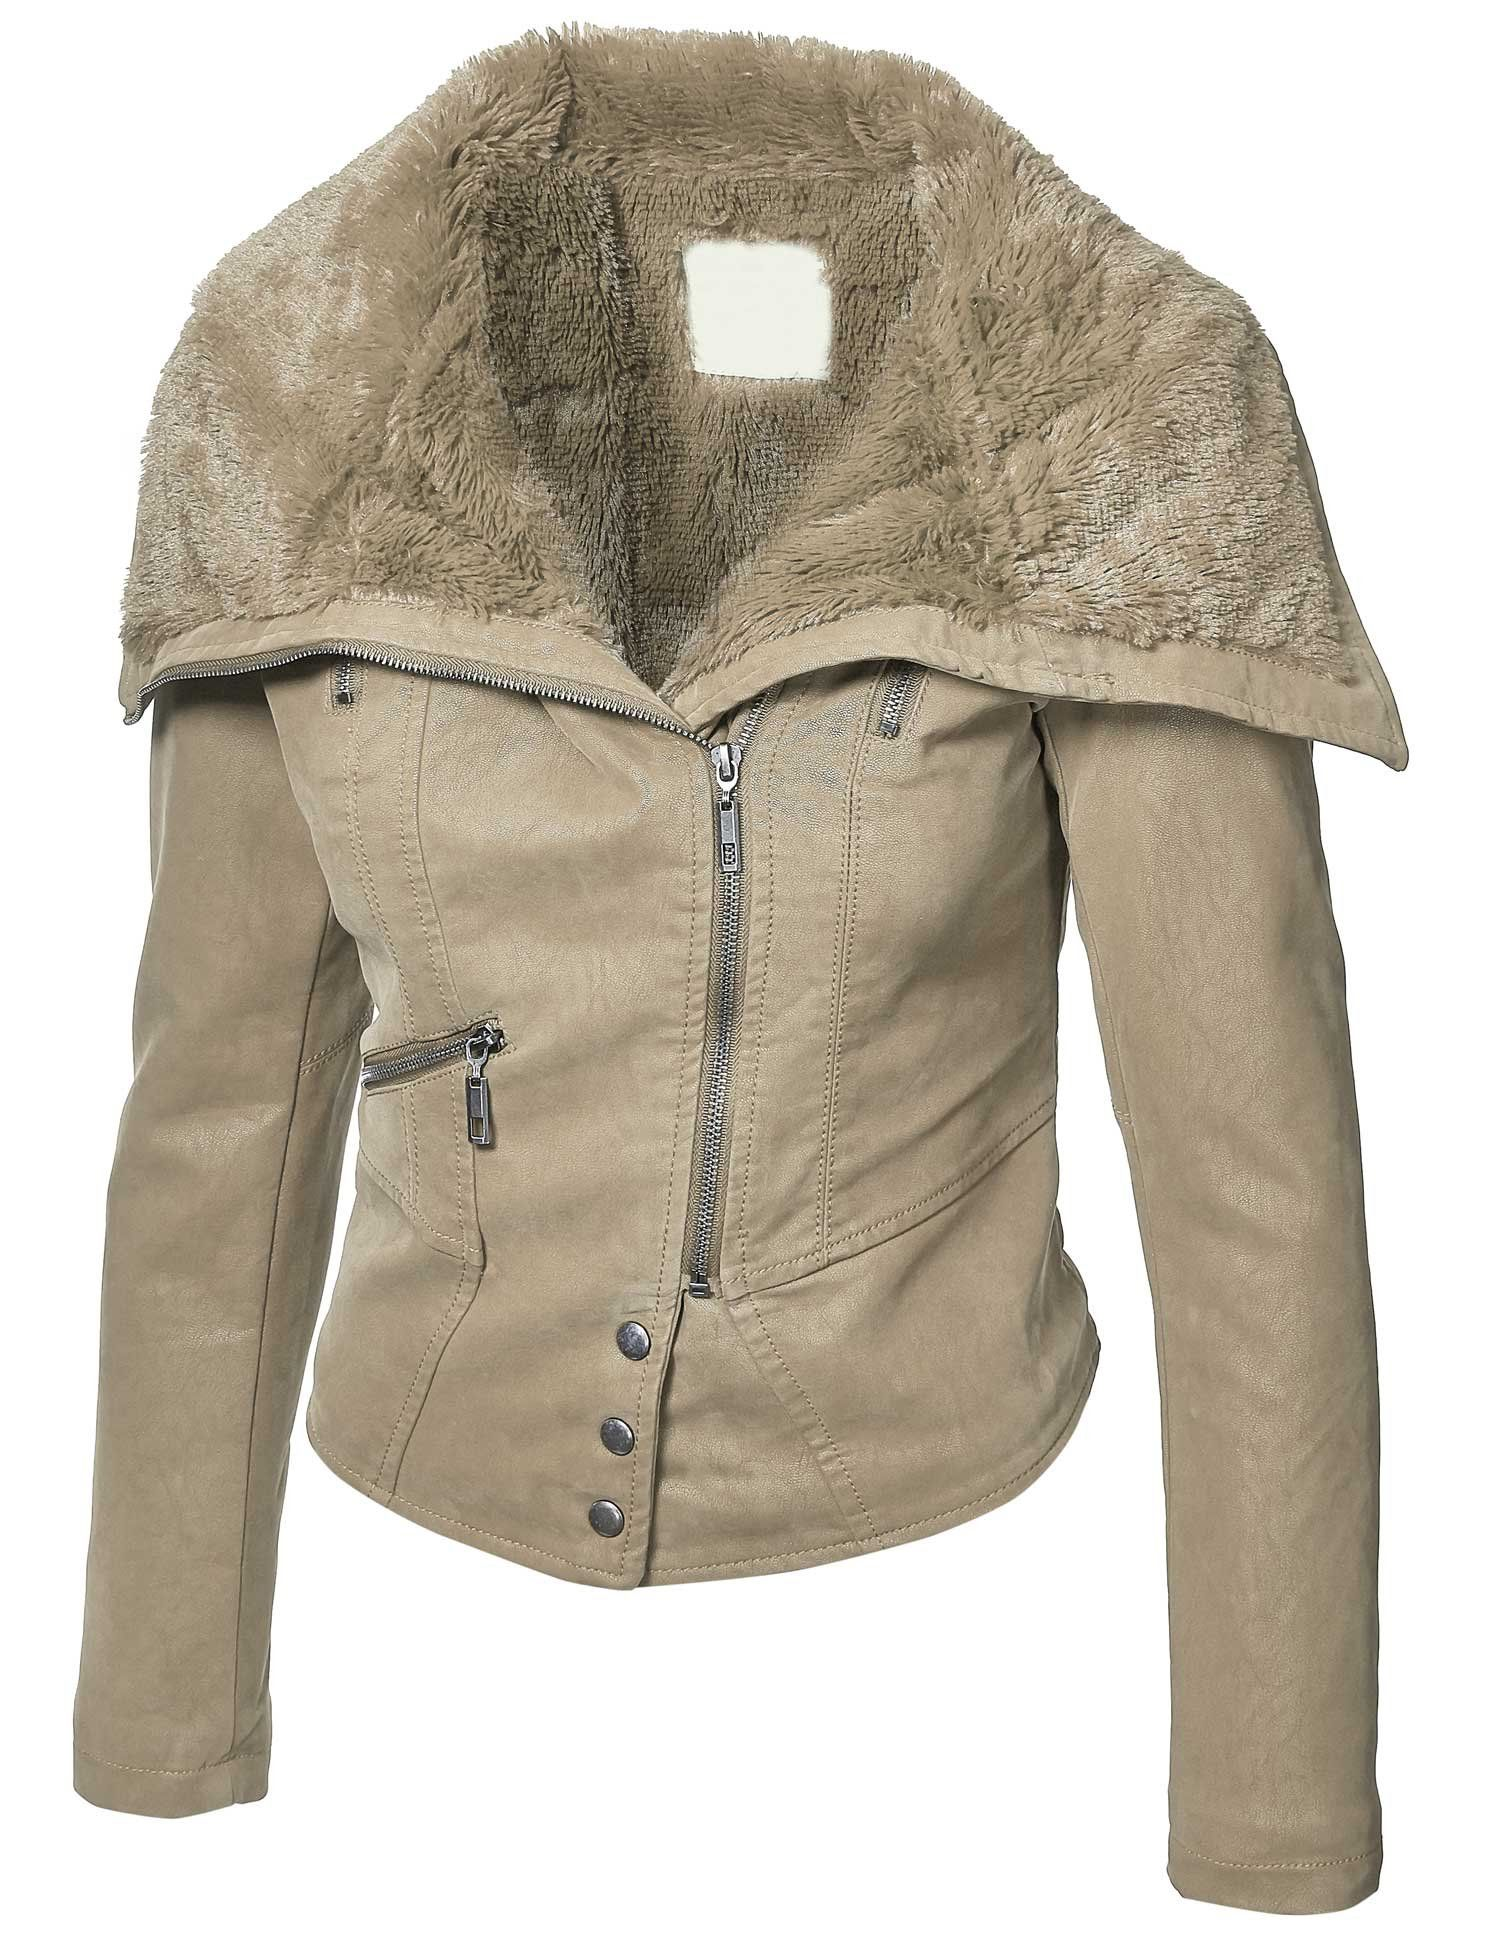 Made by Johnny Womens Faux Fur Mix Vegan Leather Jacket S